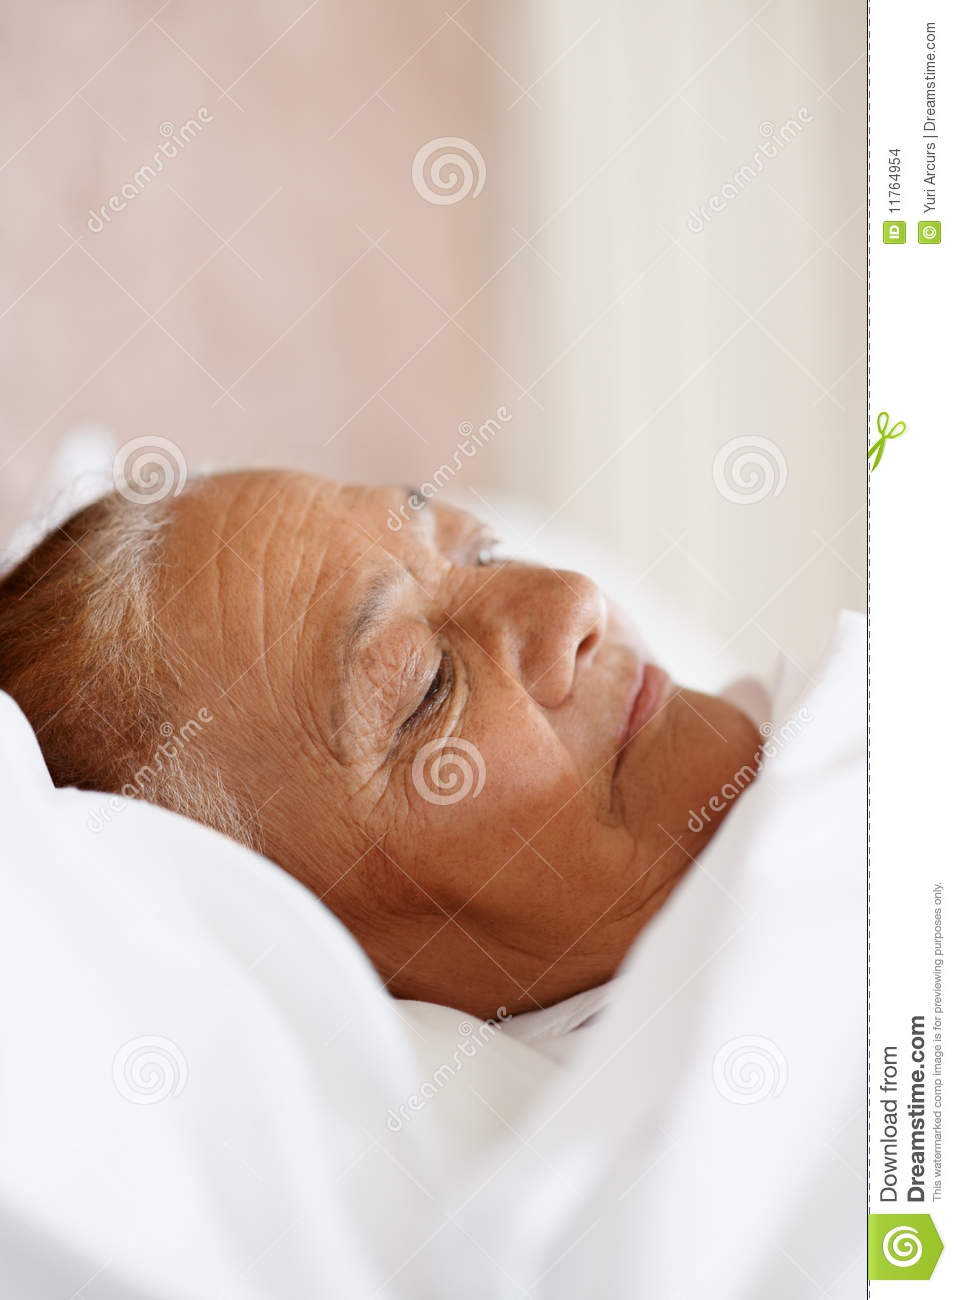 stock images closeup of an elderly woman lying in bed young at heart movie young at heart song